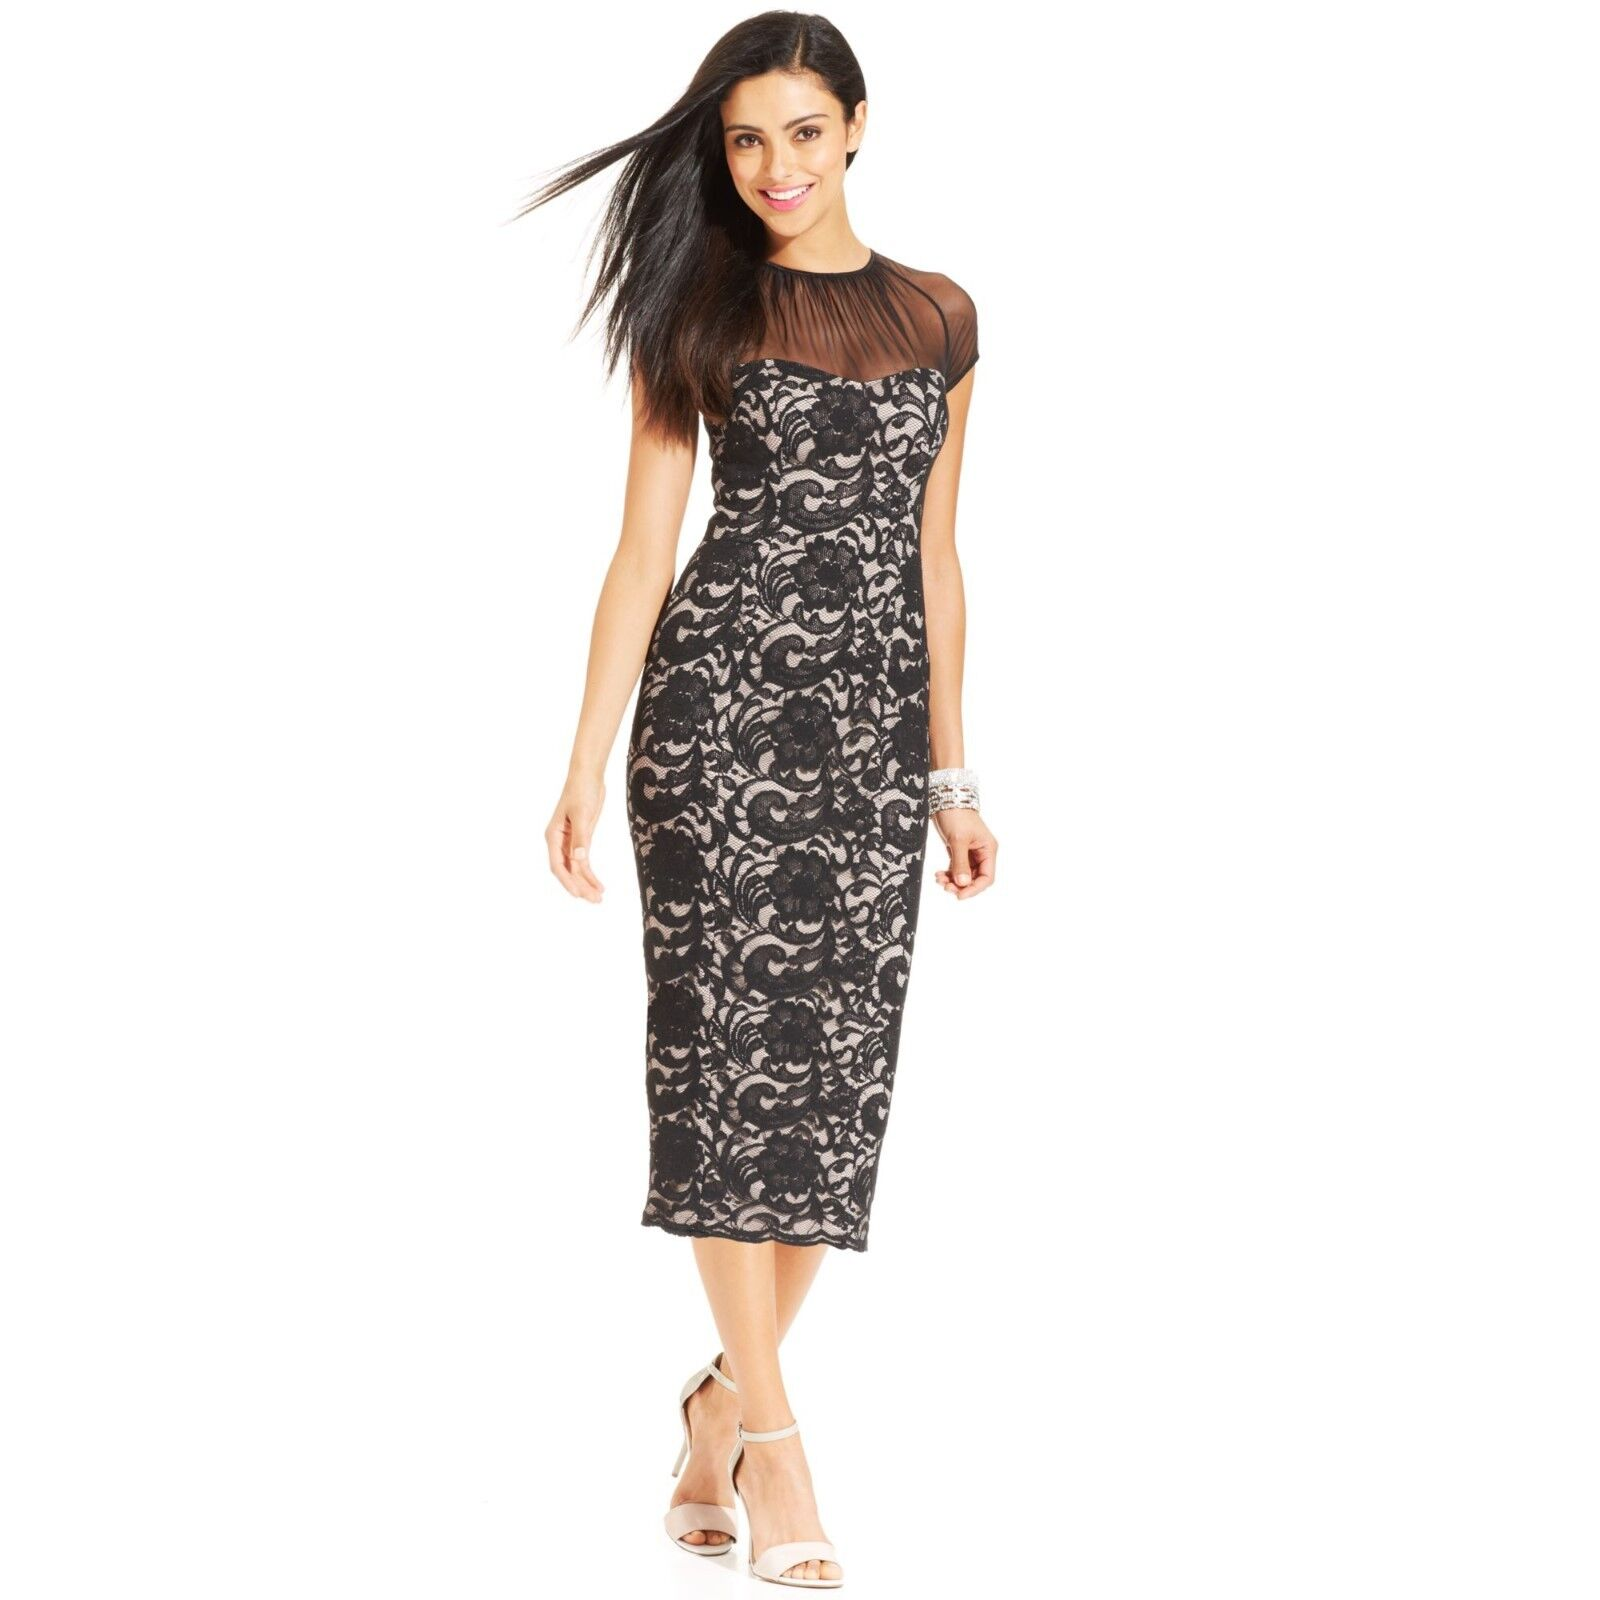 Maggy London Capsleeve Illusion Contrast lace Dress  ( size 8)